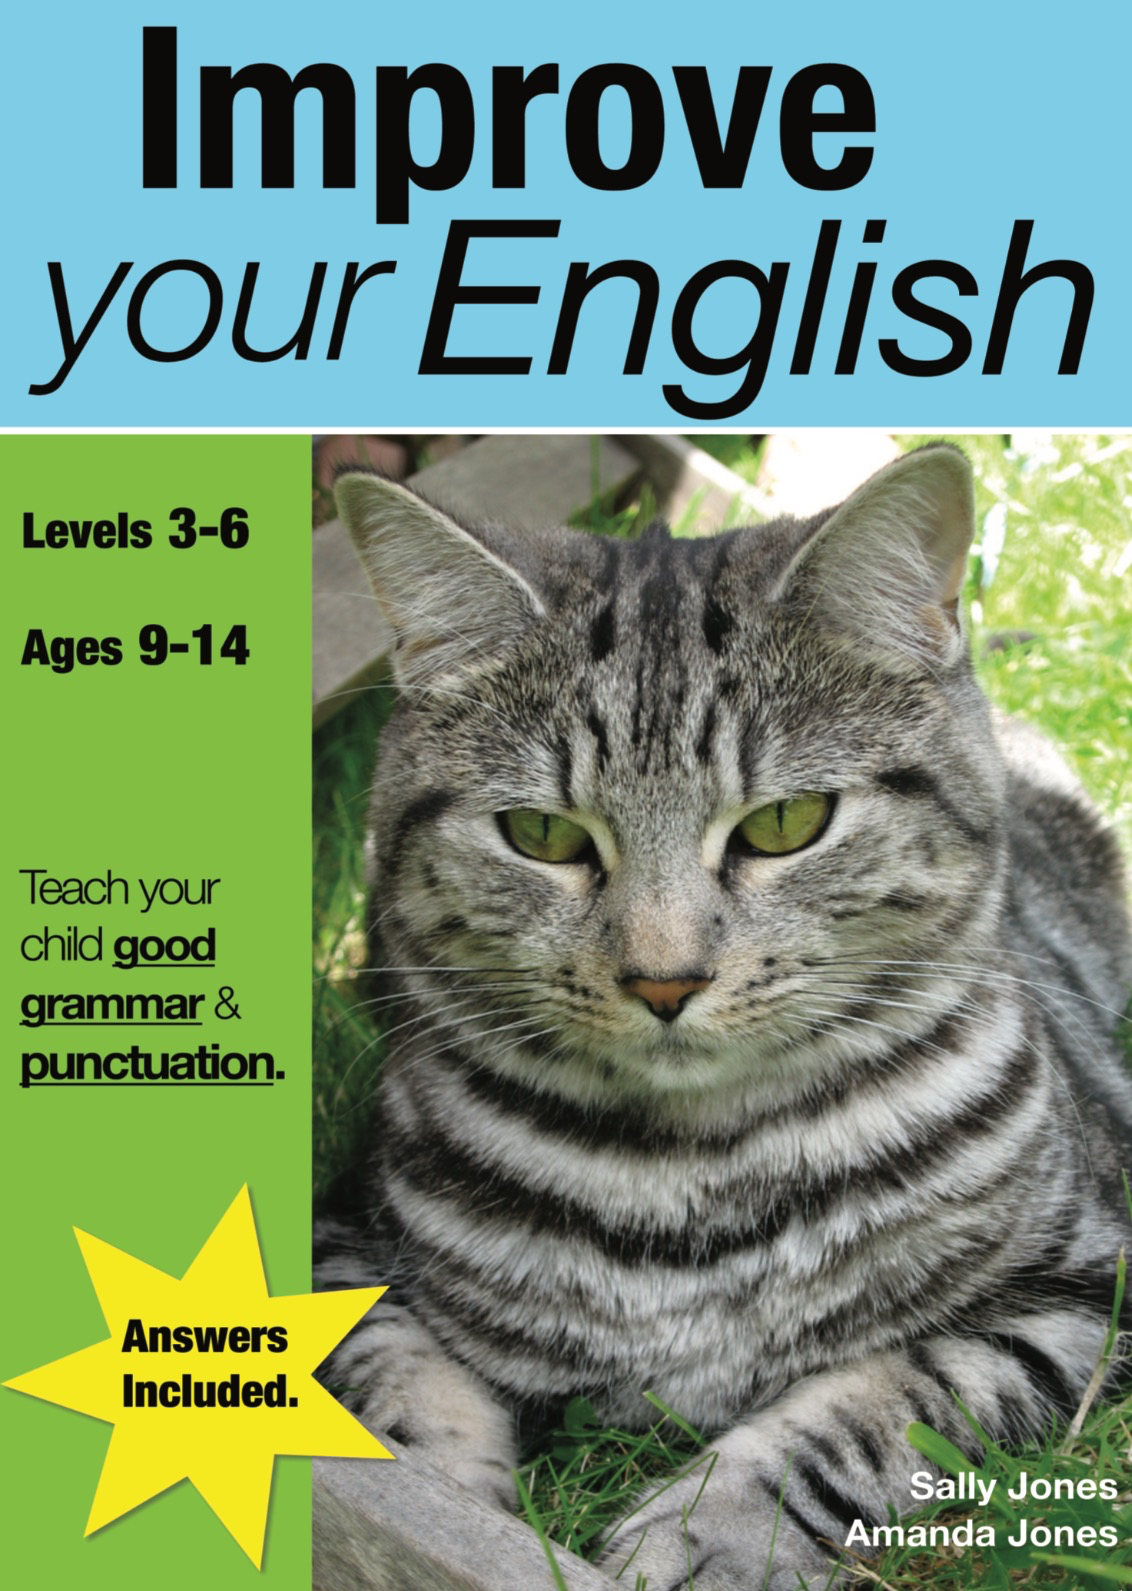 Improve Your English (Teach Your Child Good Grammar And Punctuation) 9-14 years Print Book